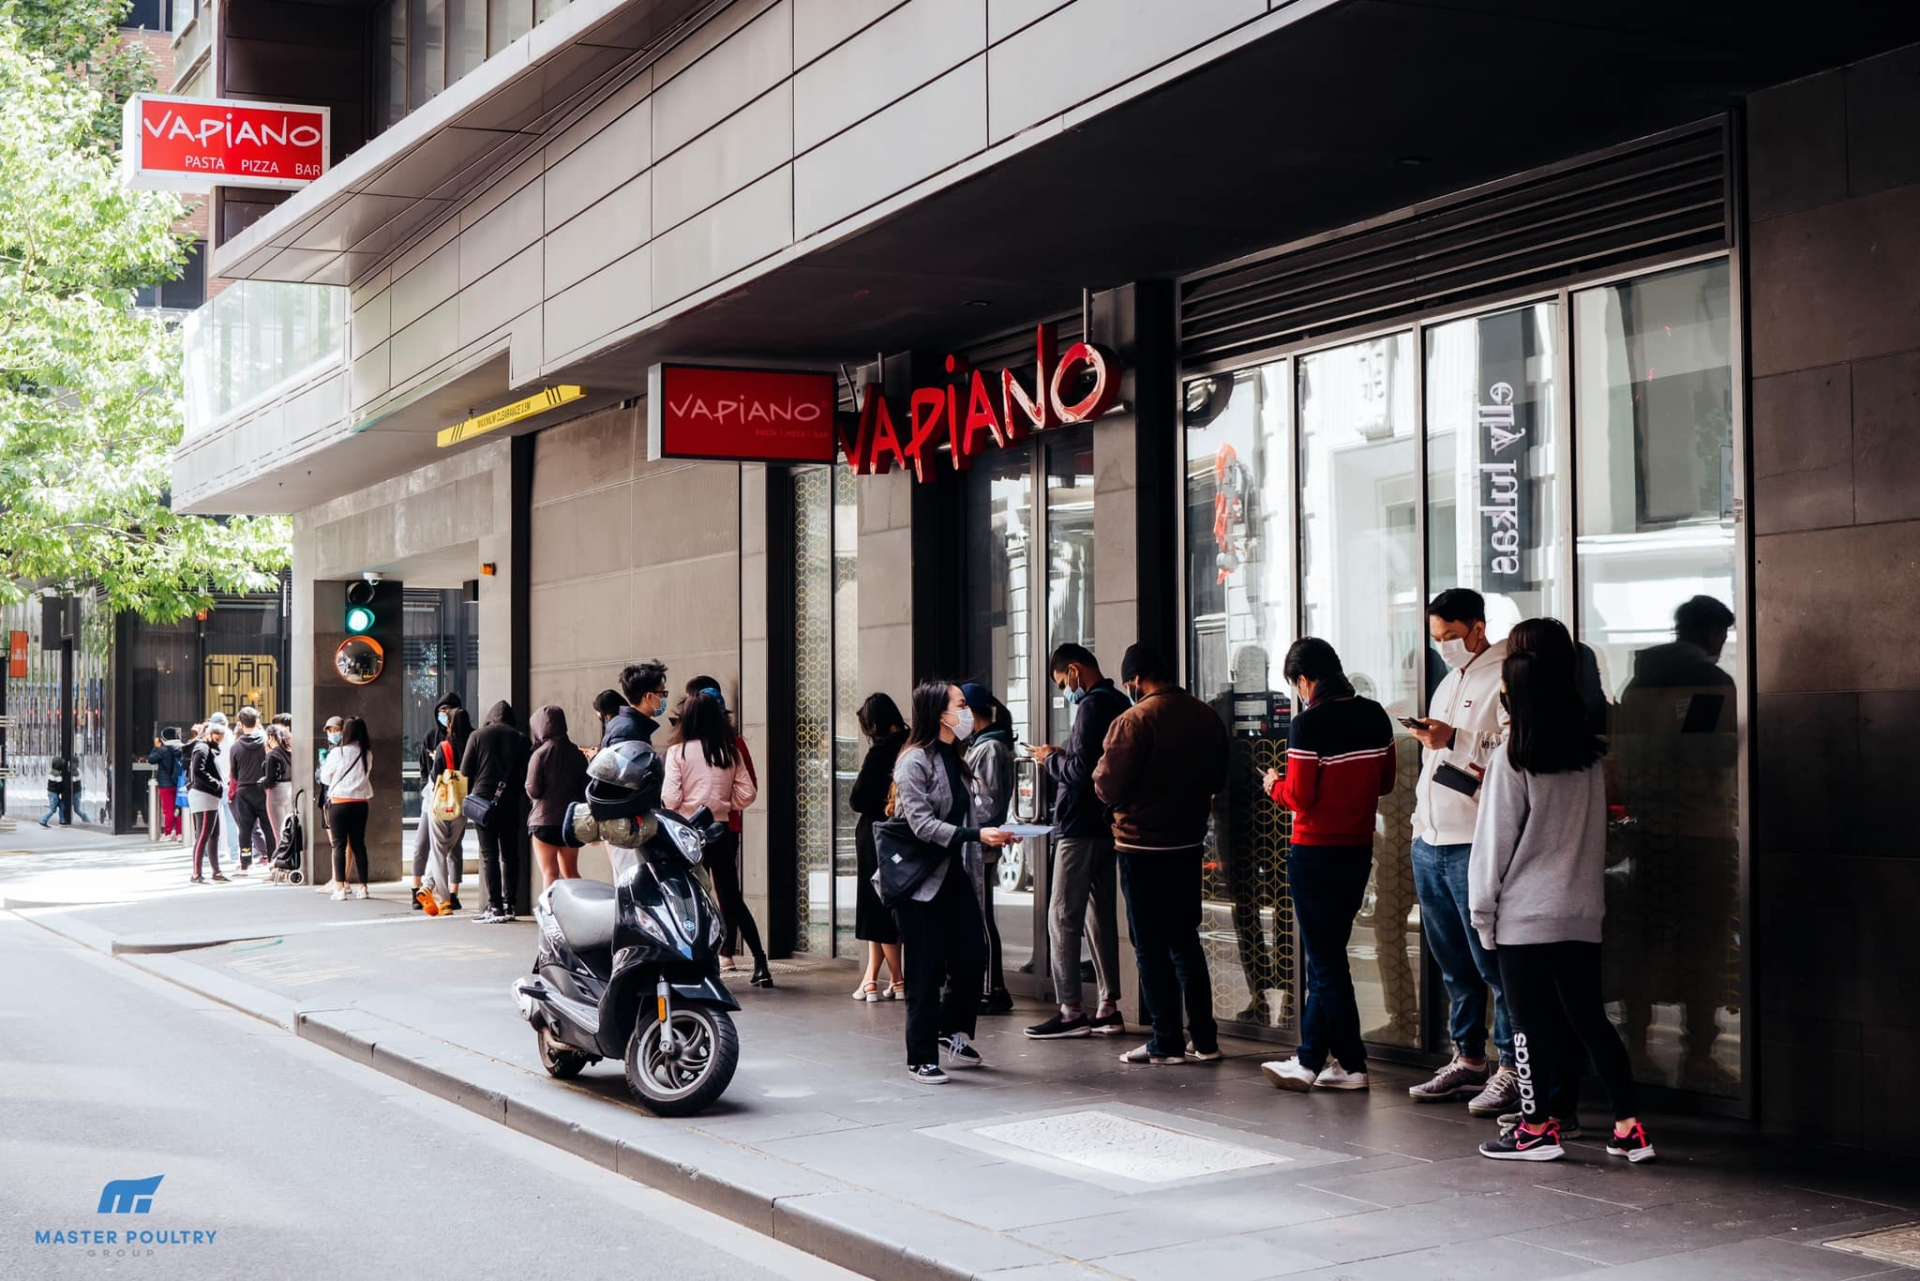 Vietnamese owned business in australia support community amid pandemic